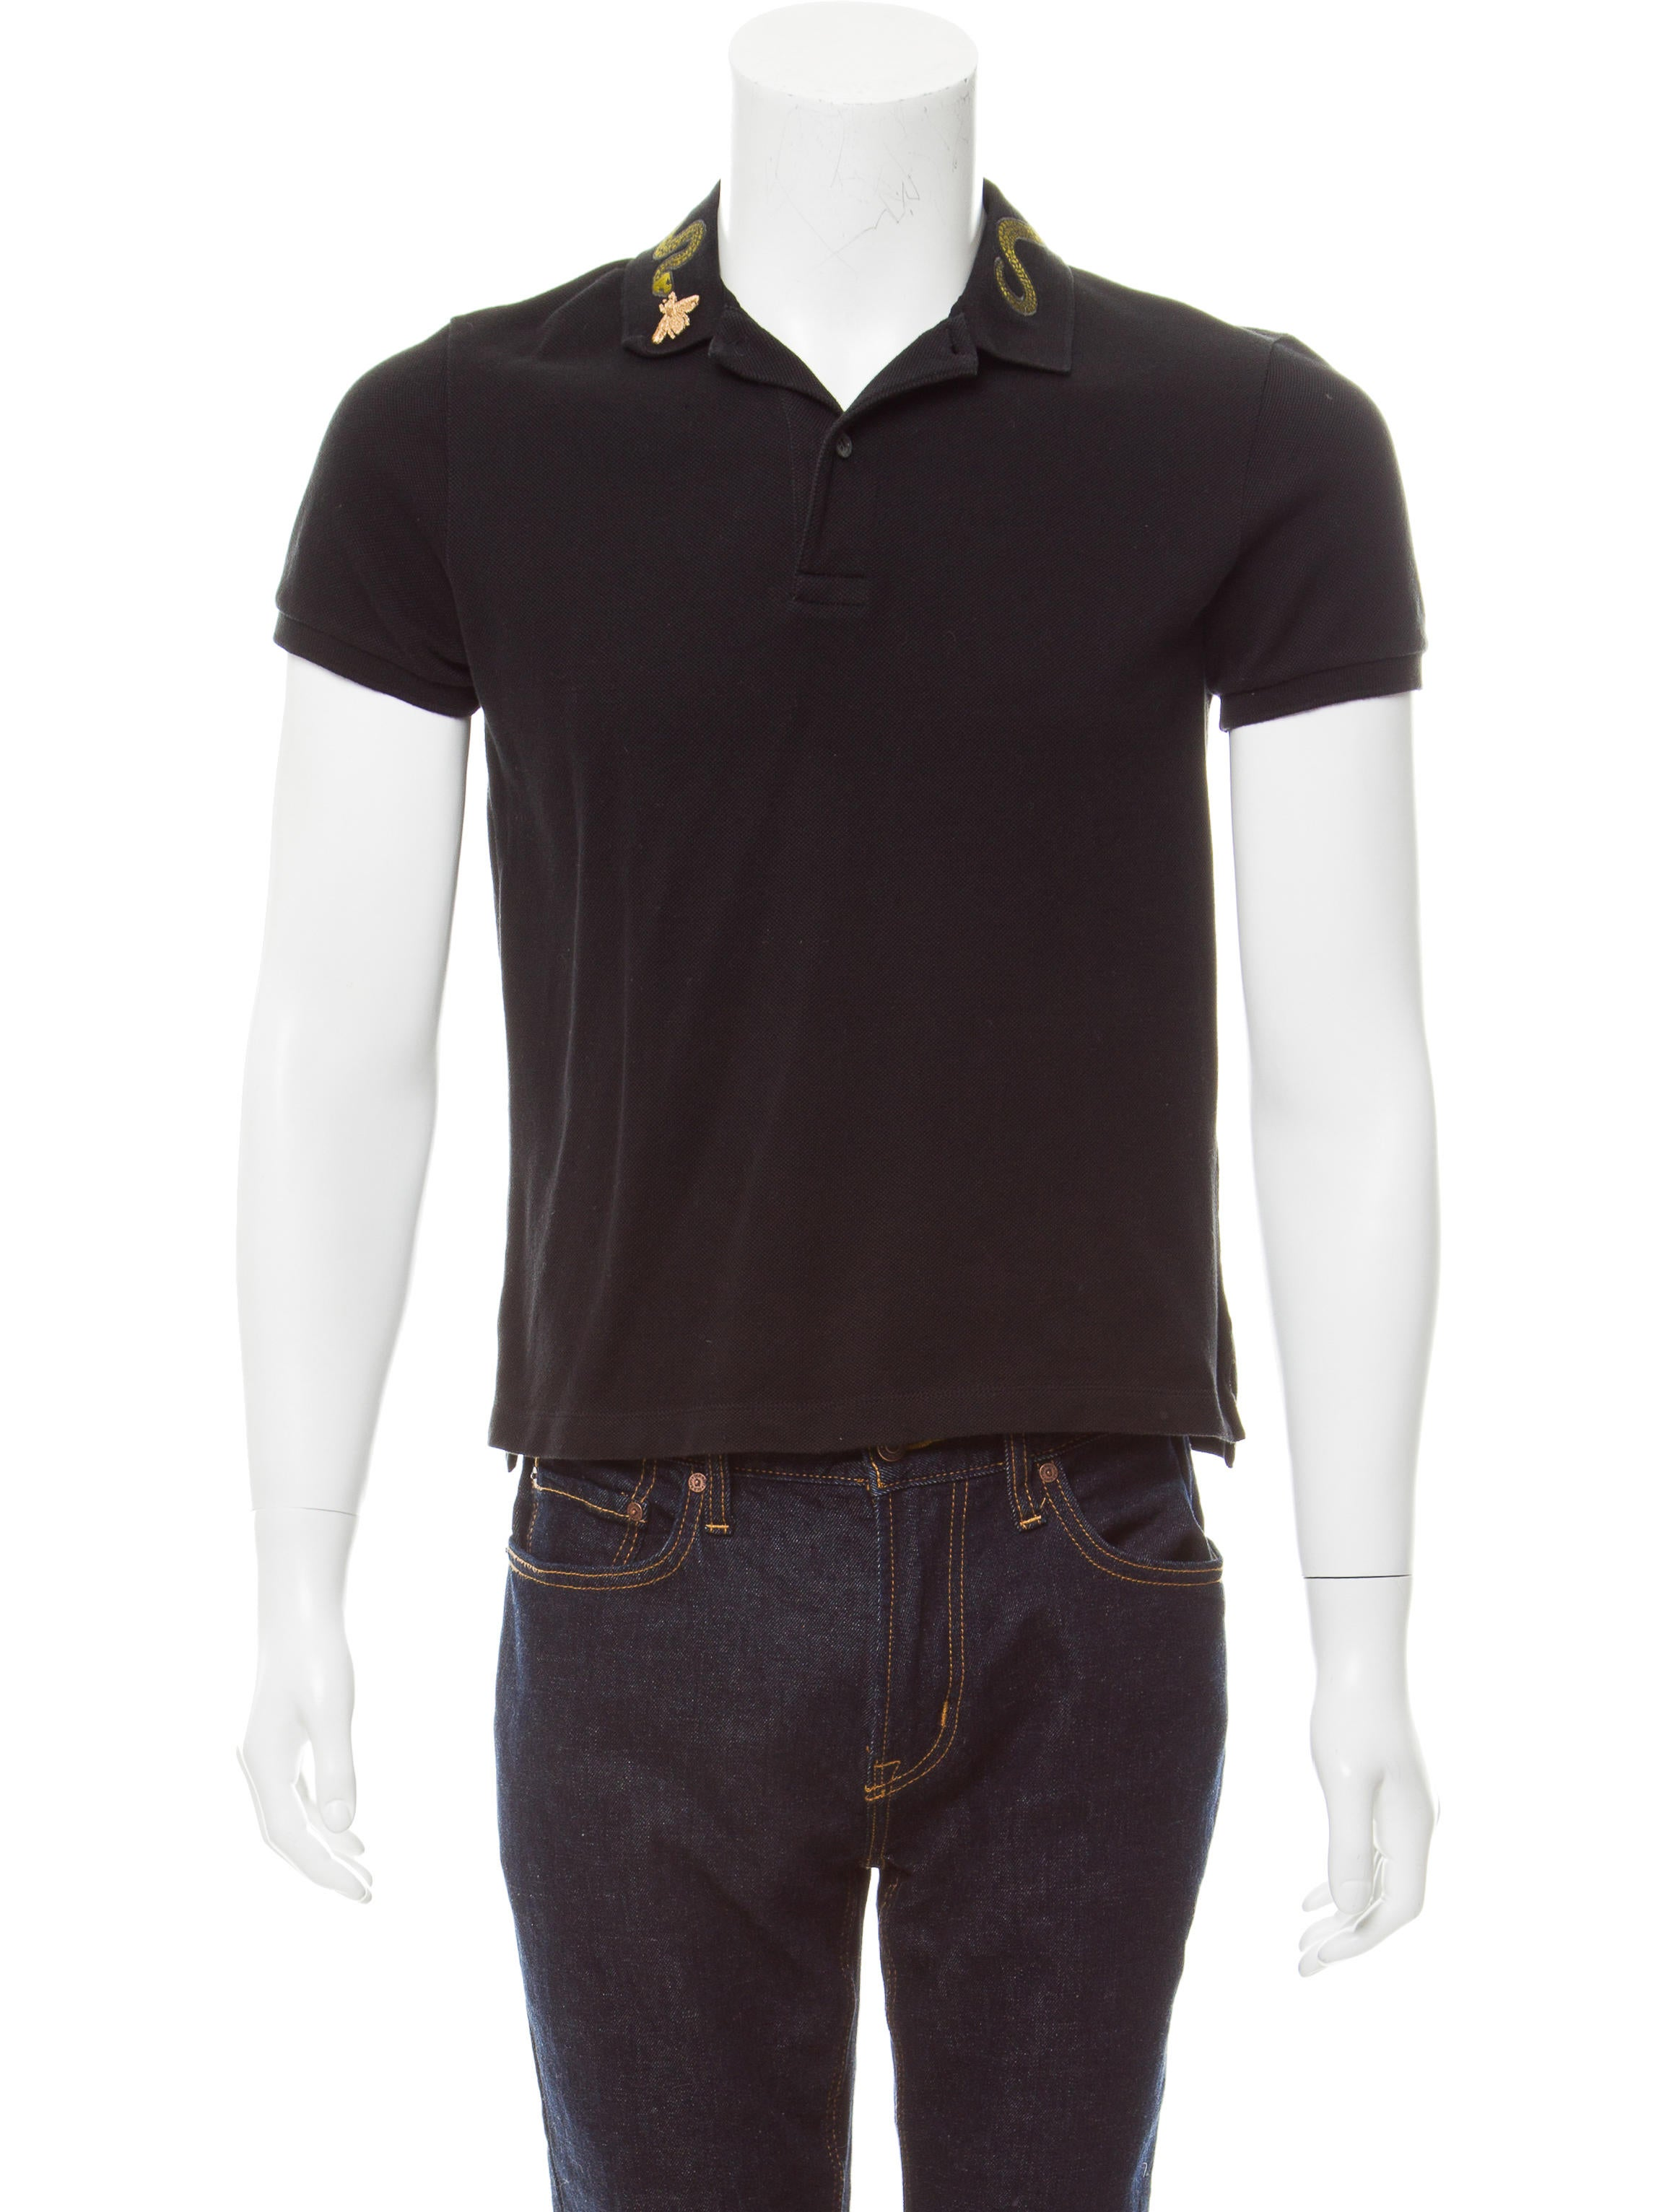 4becaf6c Gucci Kingsnake Embroidered Polo - Clothing - GUC177622 | The RealReal